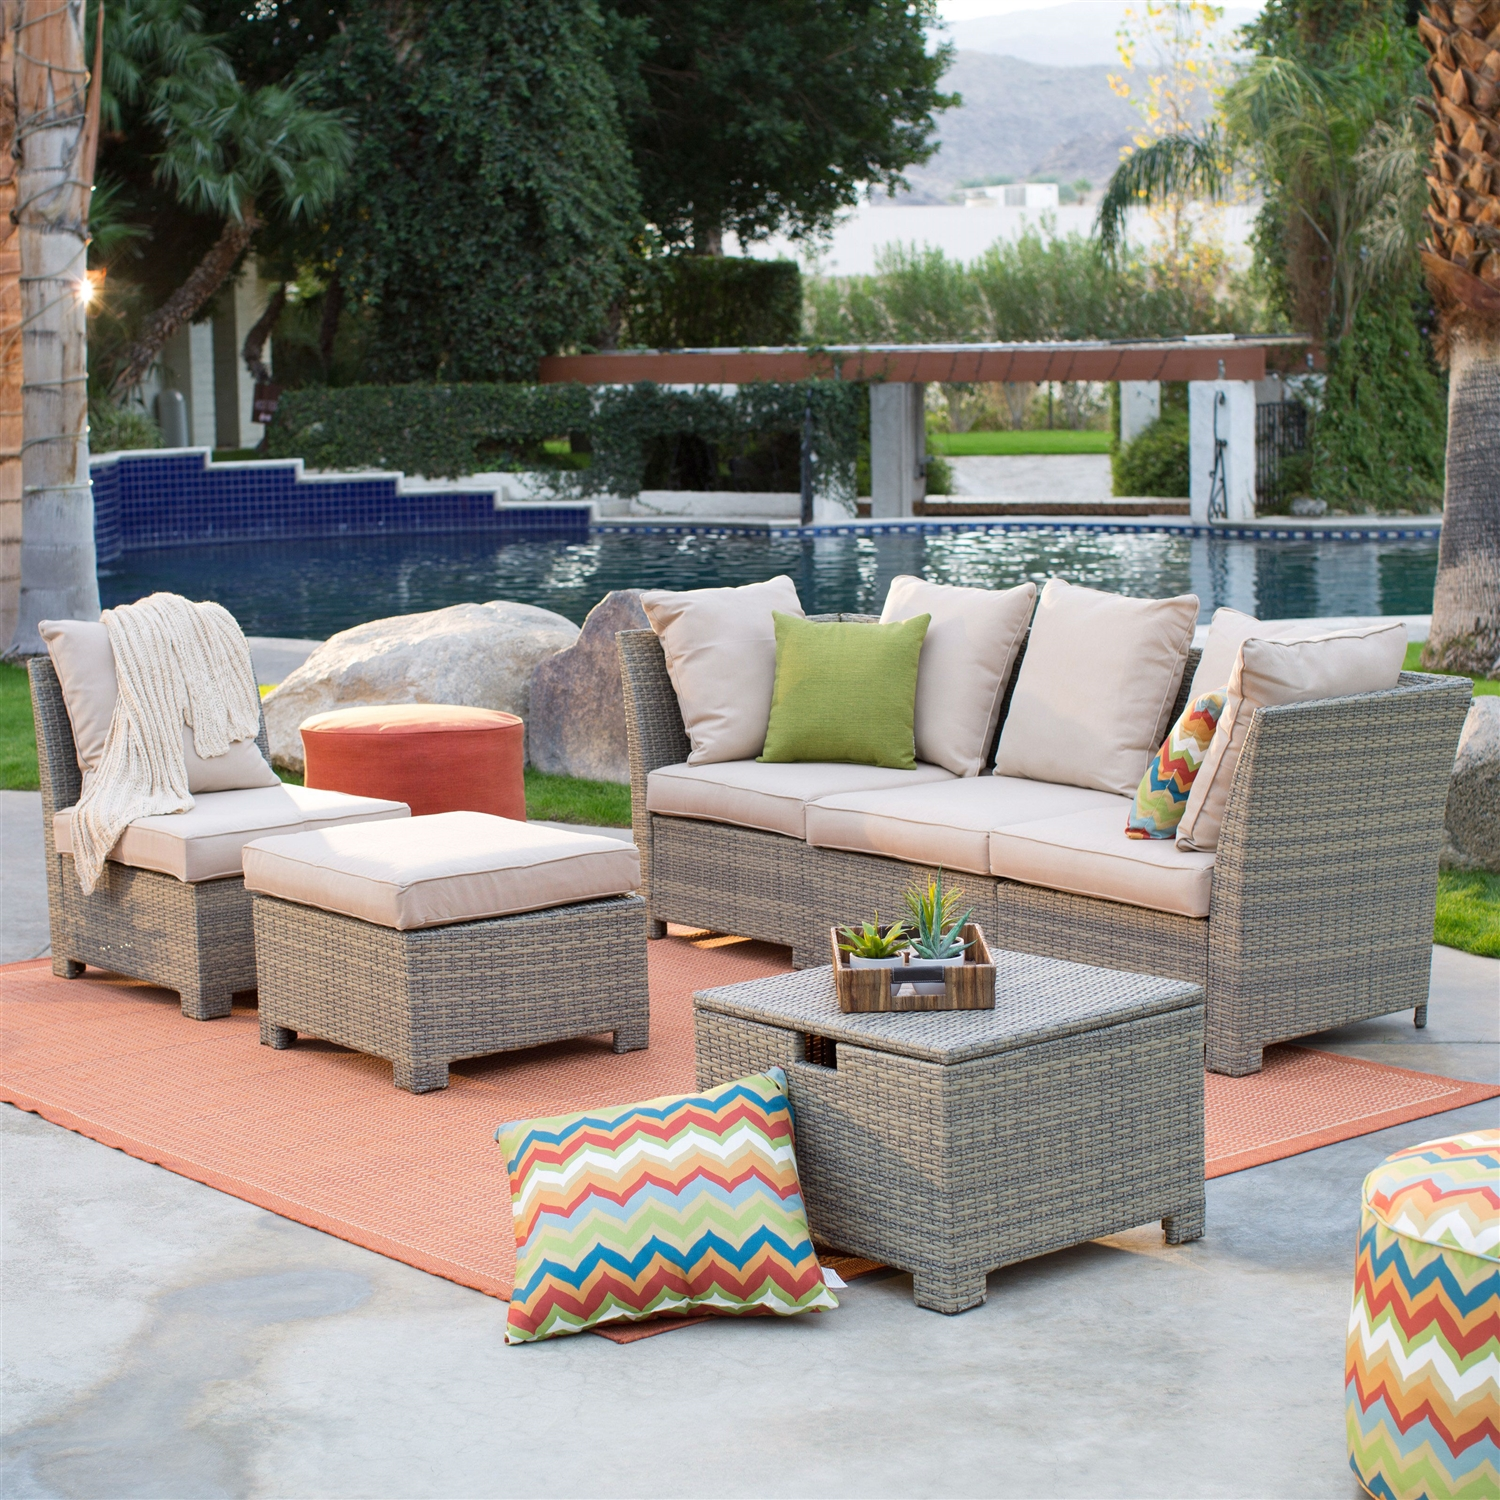 Resin Garden Furniture Natural Outdoor Wicker Resin Patio Furniture Conversation Set |  Fastfurnishings.com